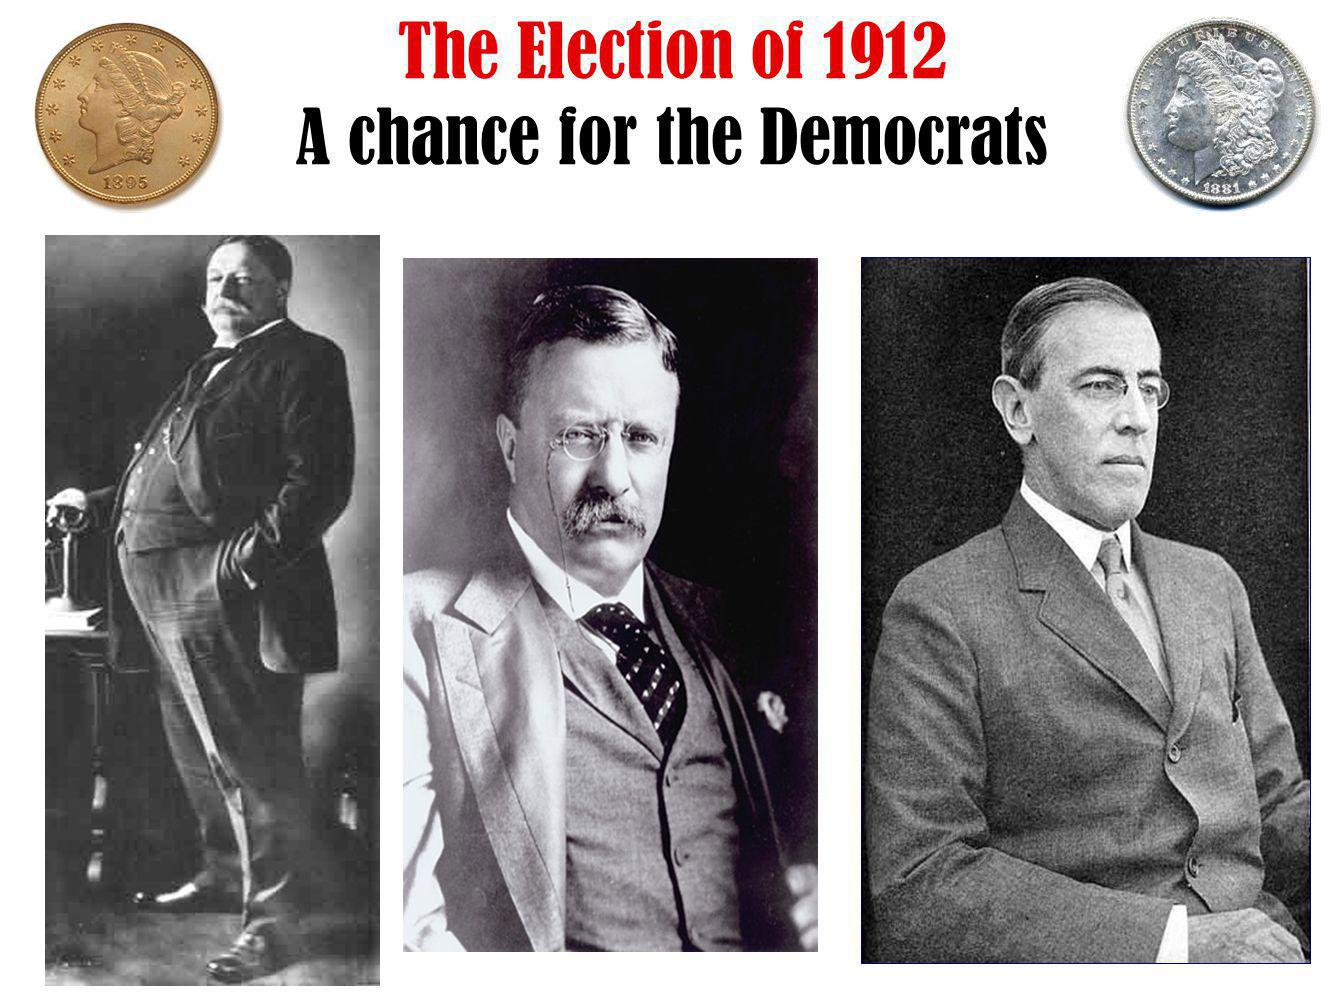 The Election of 1912 A chance for the Democrats